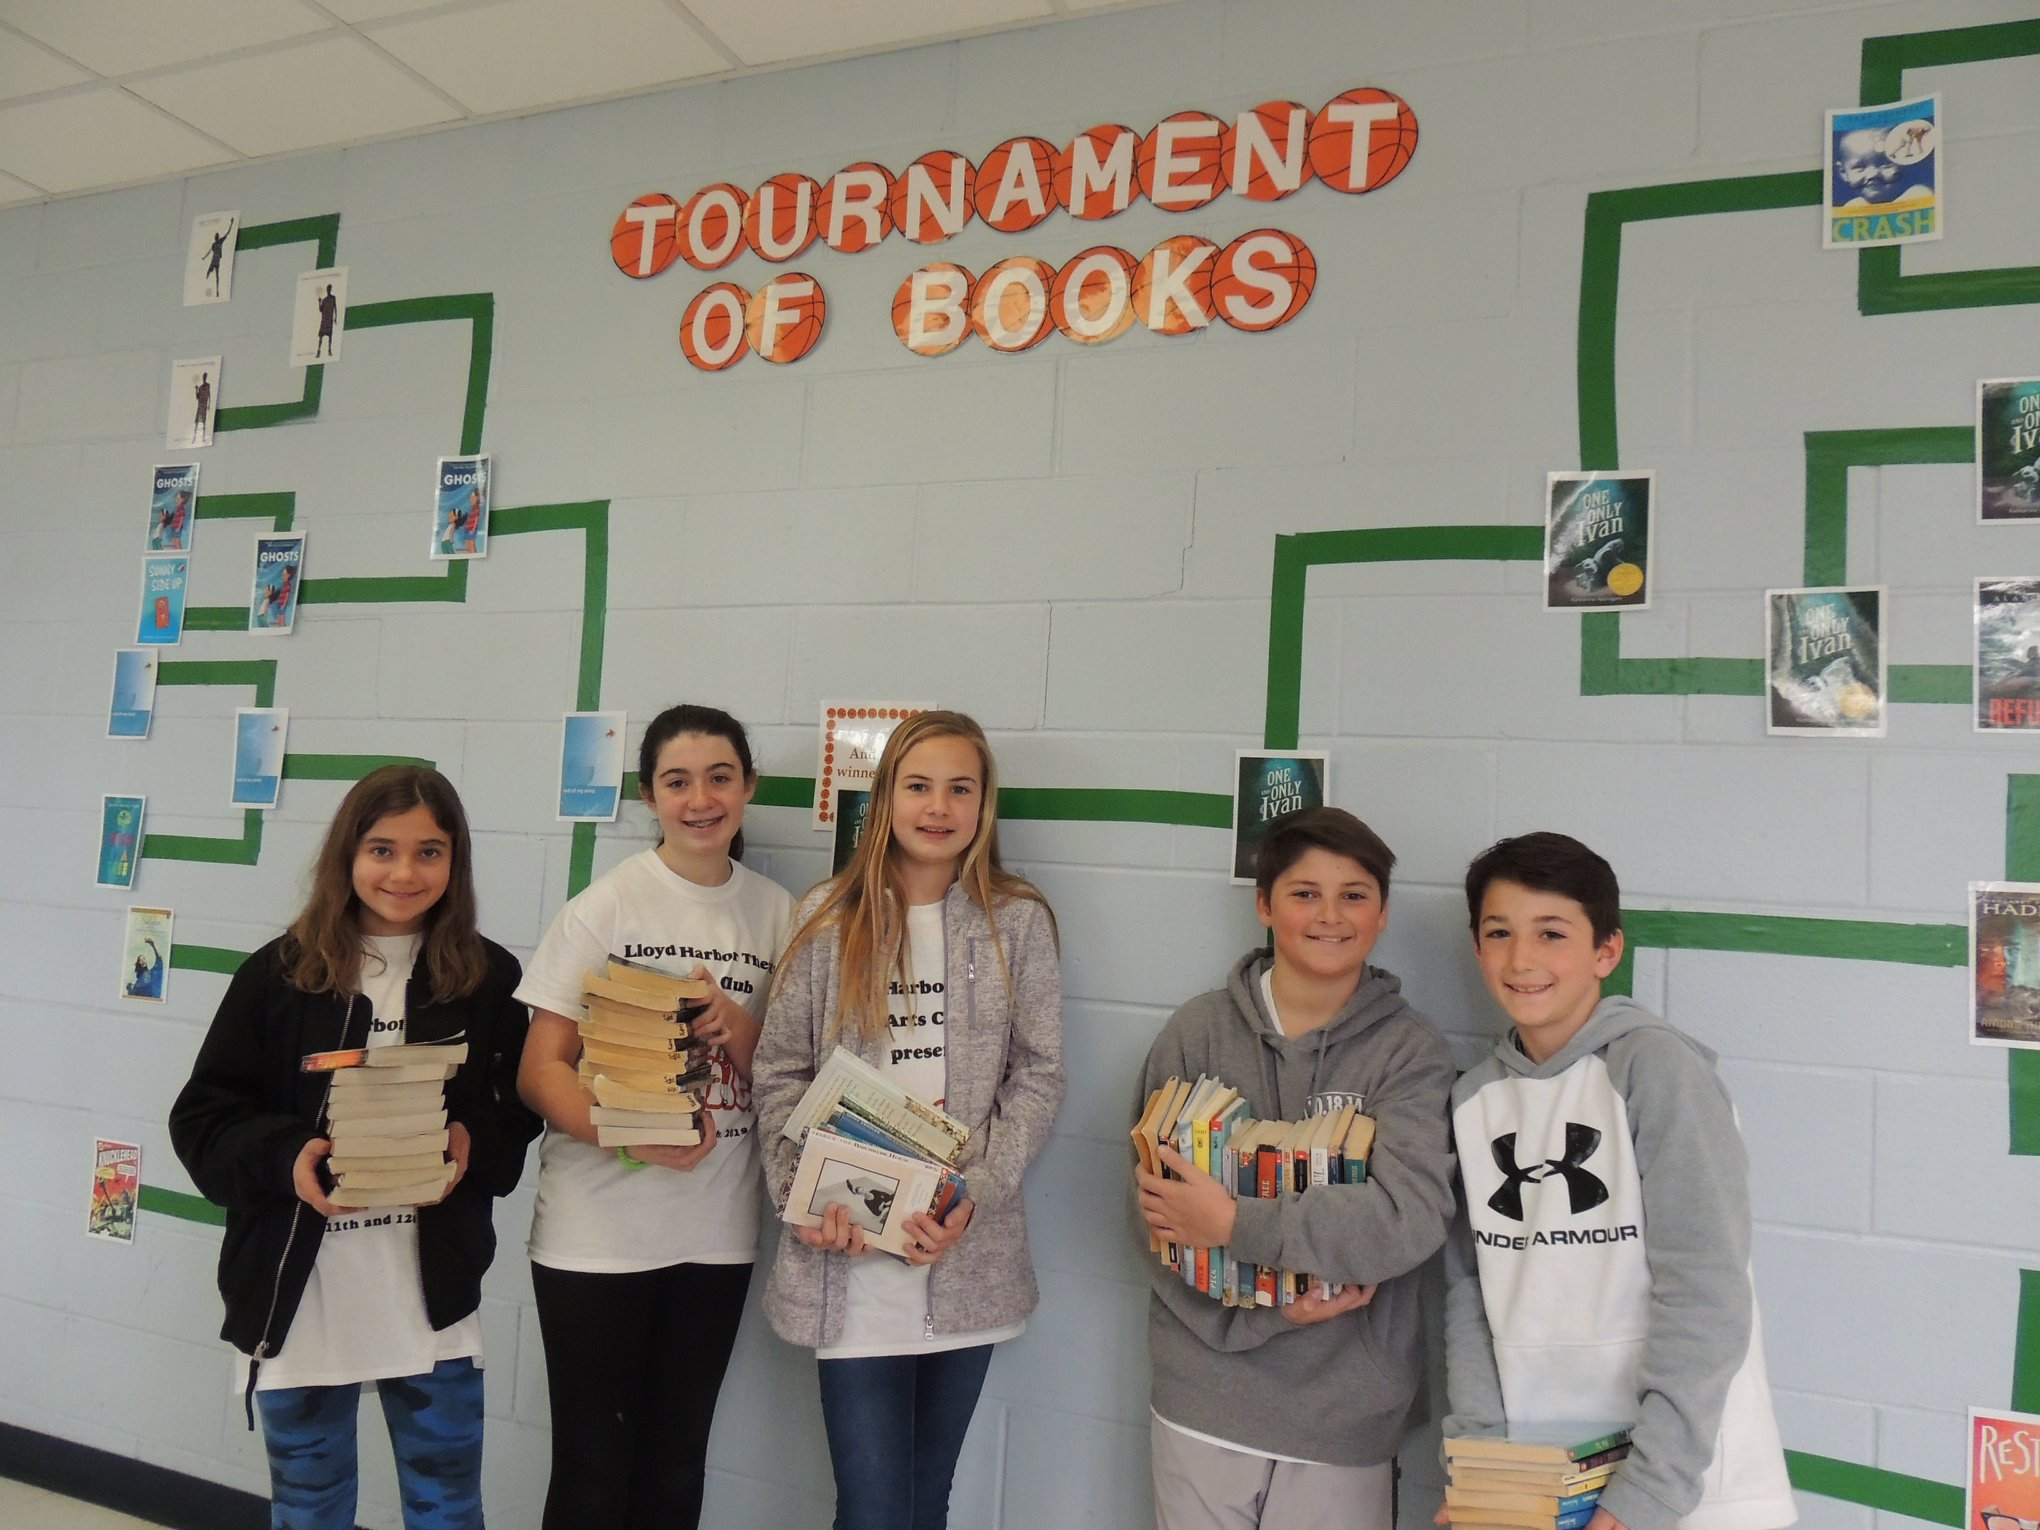 LH Tournament of Books